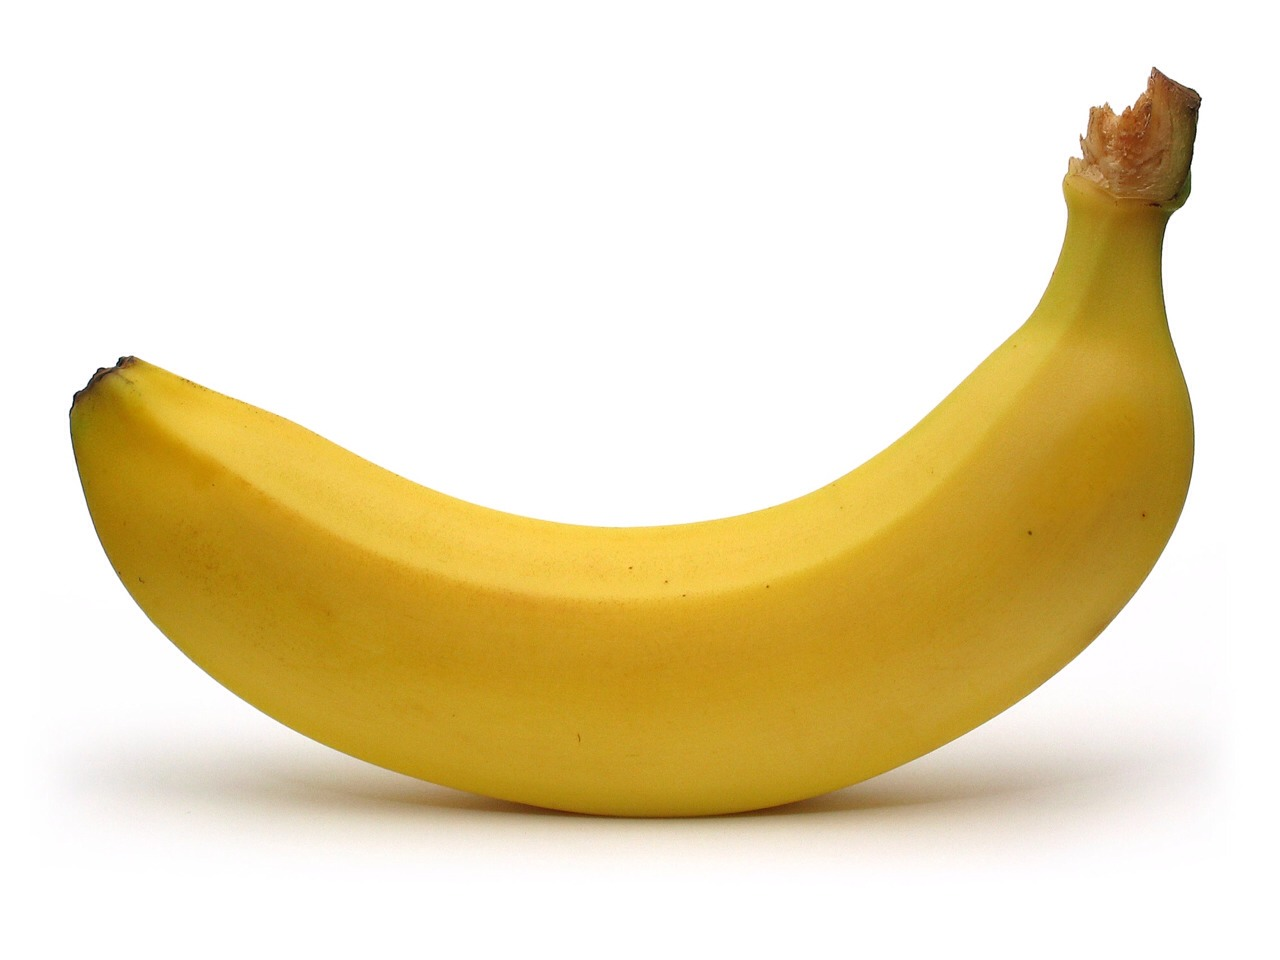 1.Blend banana in a blender, making sure all chunks are smoothed out (this is VERY important! If you don't, you'll be stuck with banana chunks stuck in your hair all day)